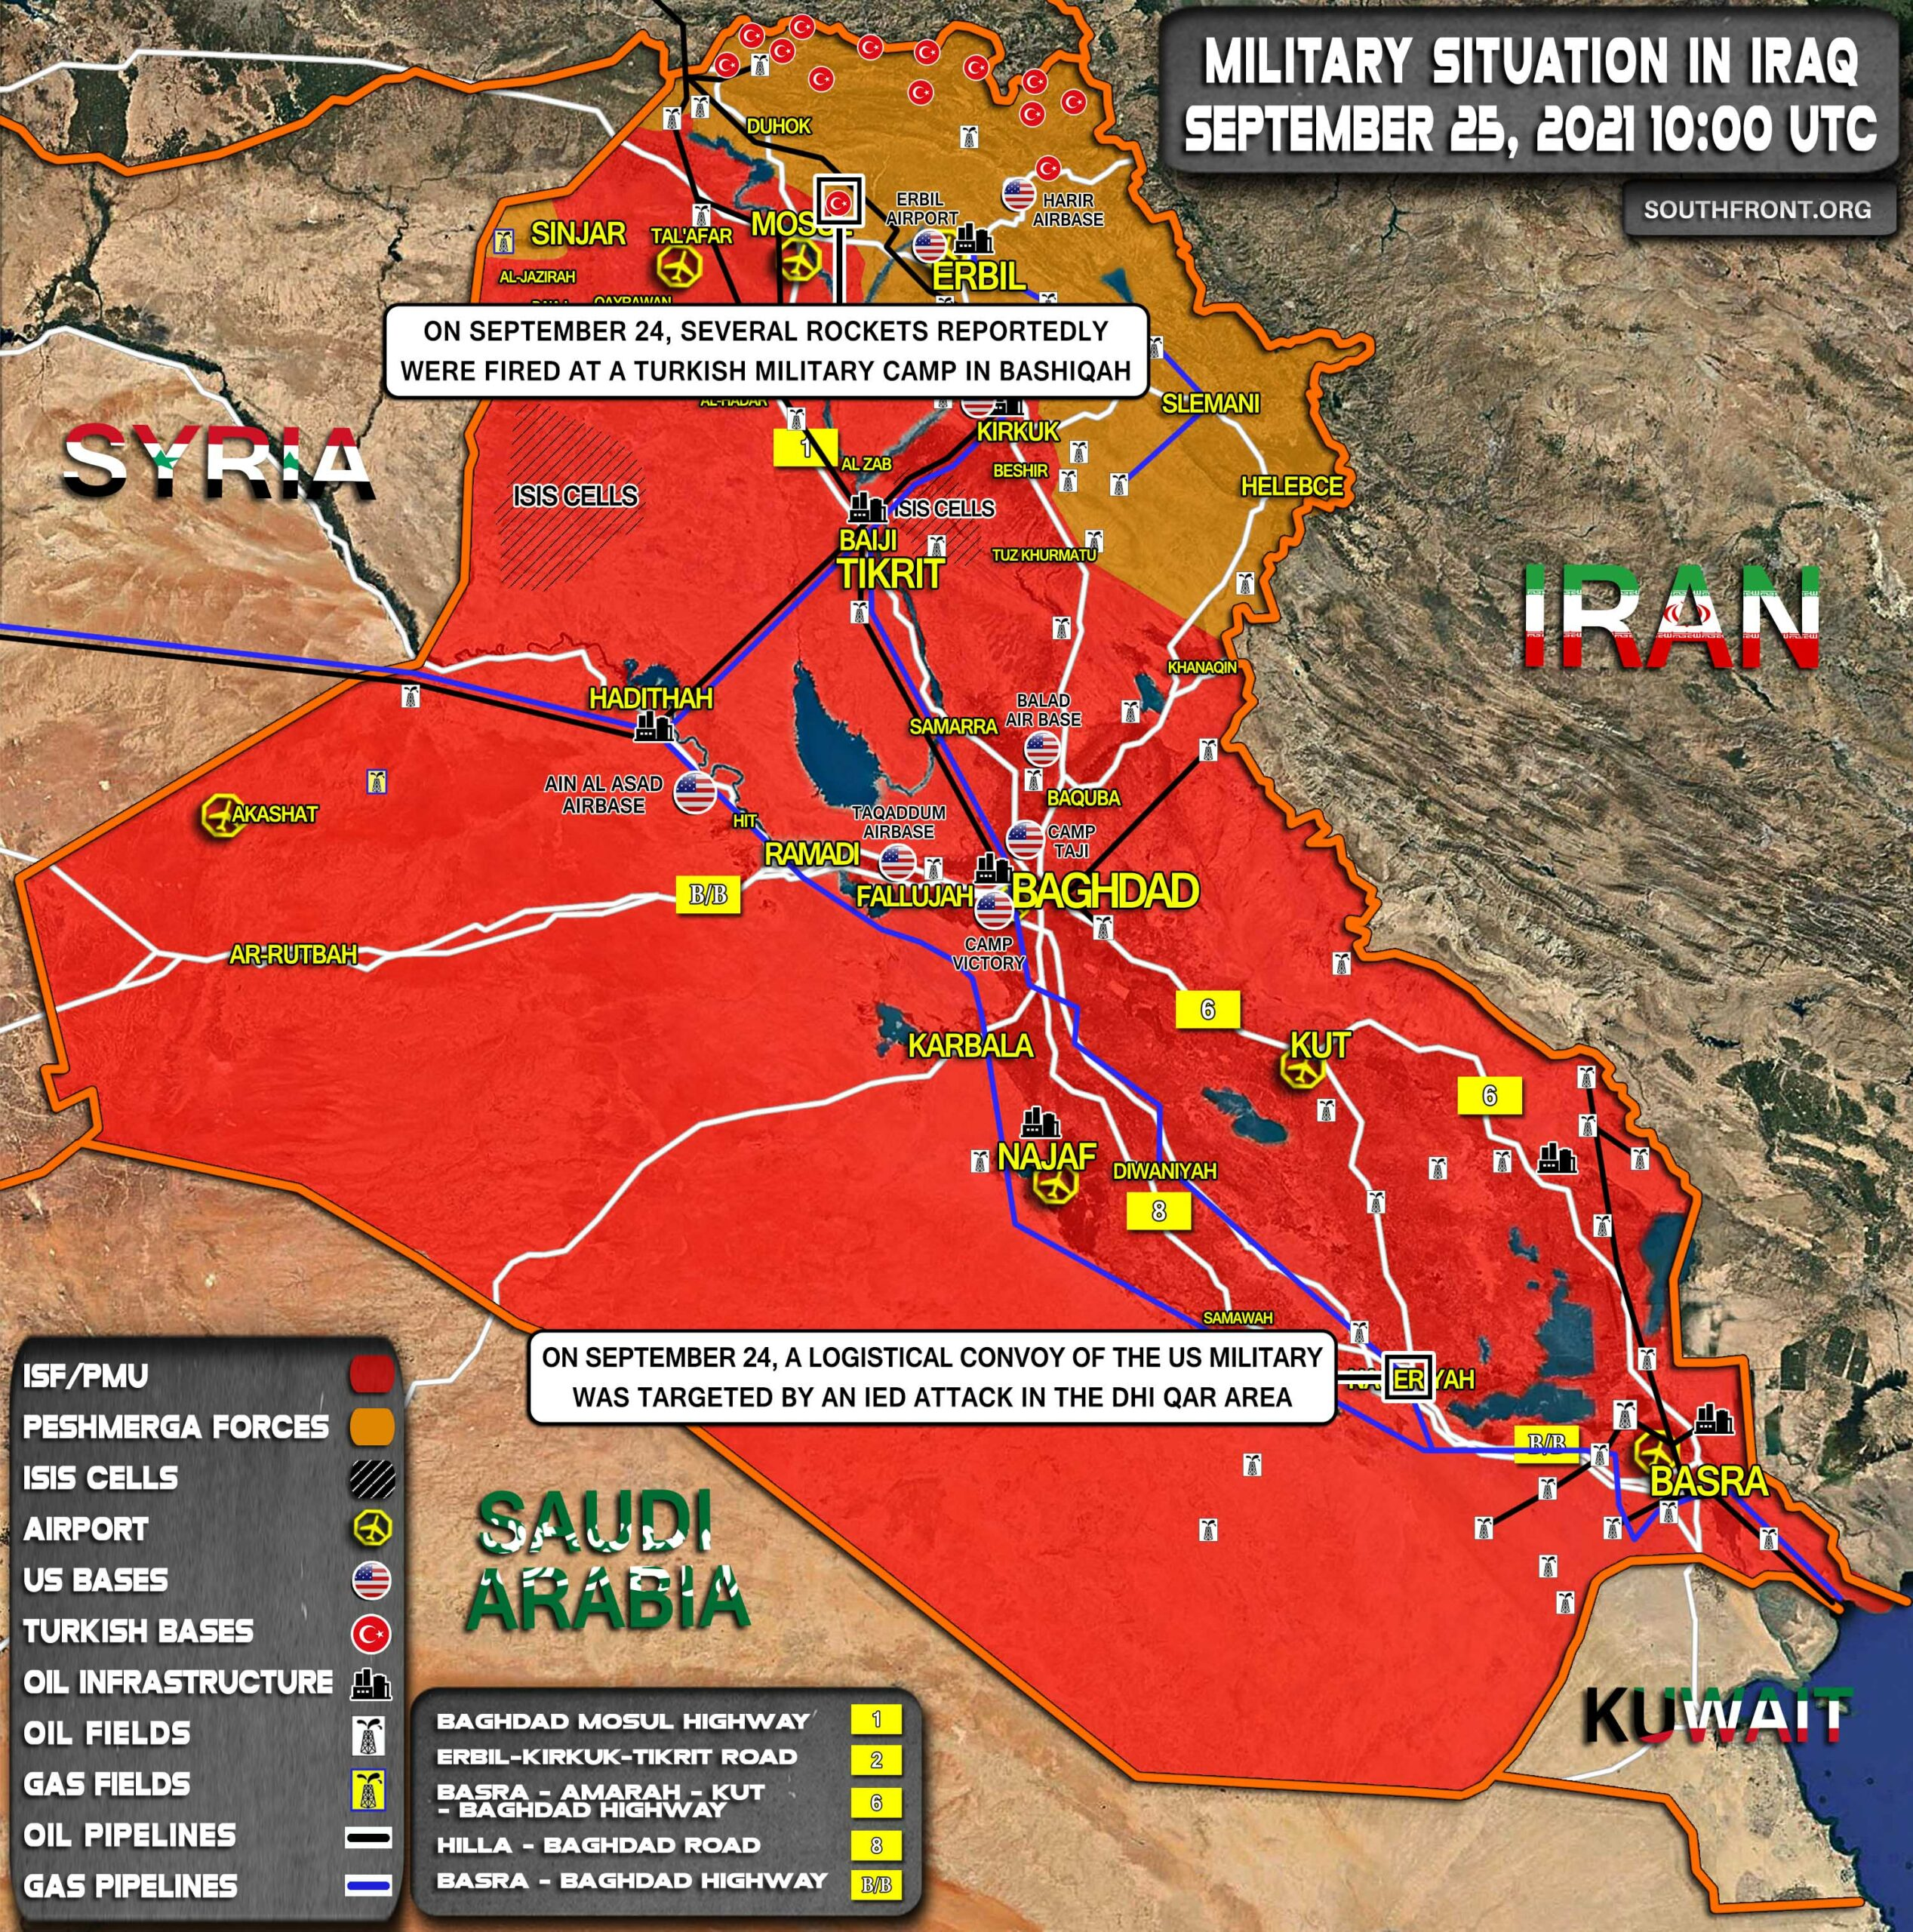 Military Situation In Iraq On September 25, 2021 (Map Update)